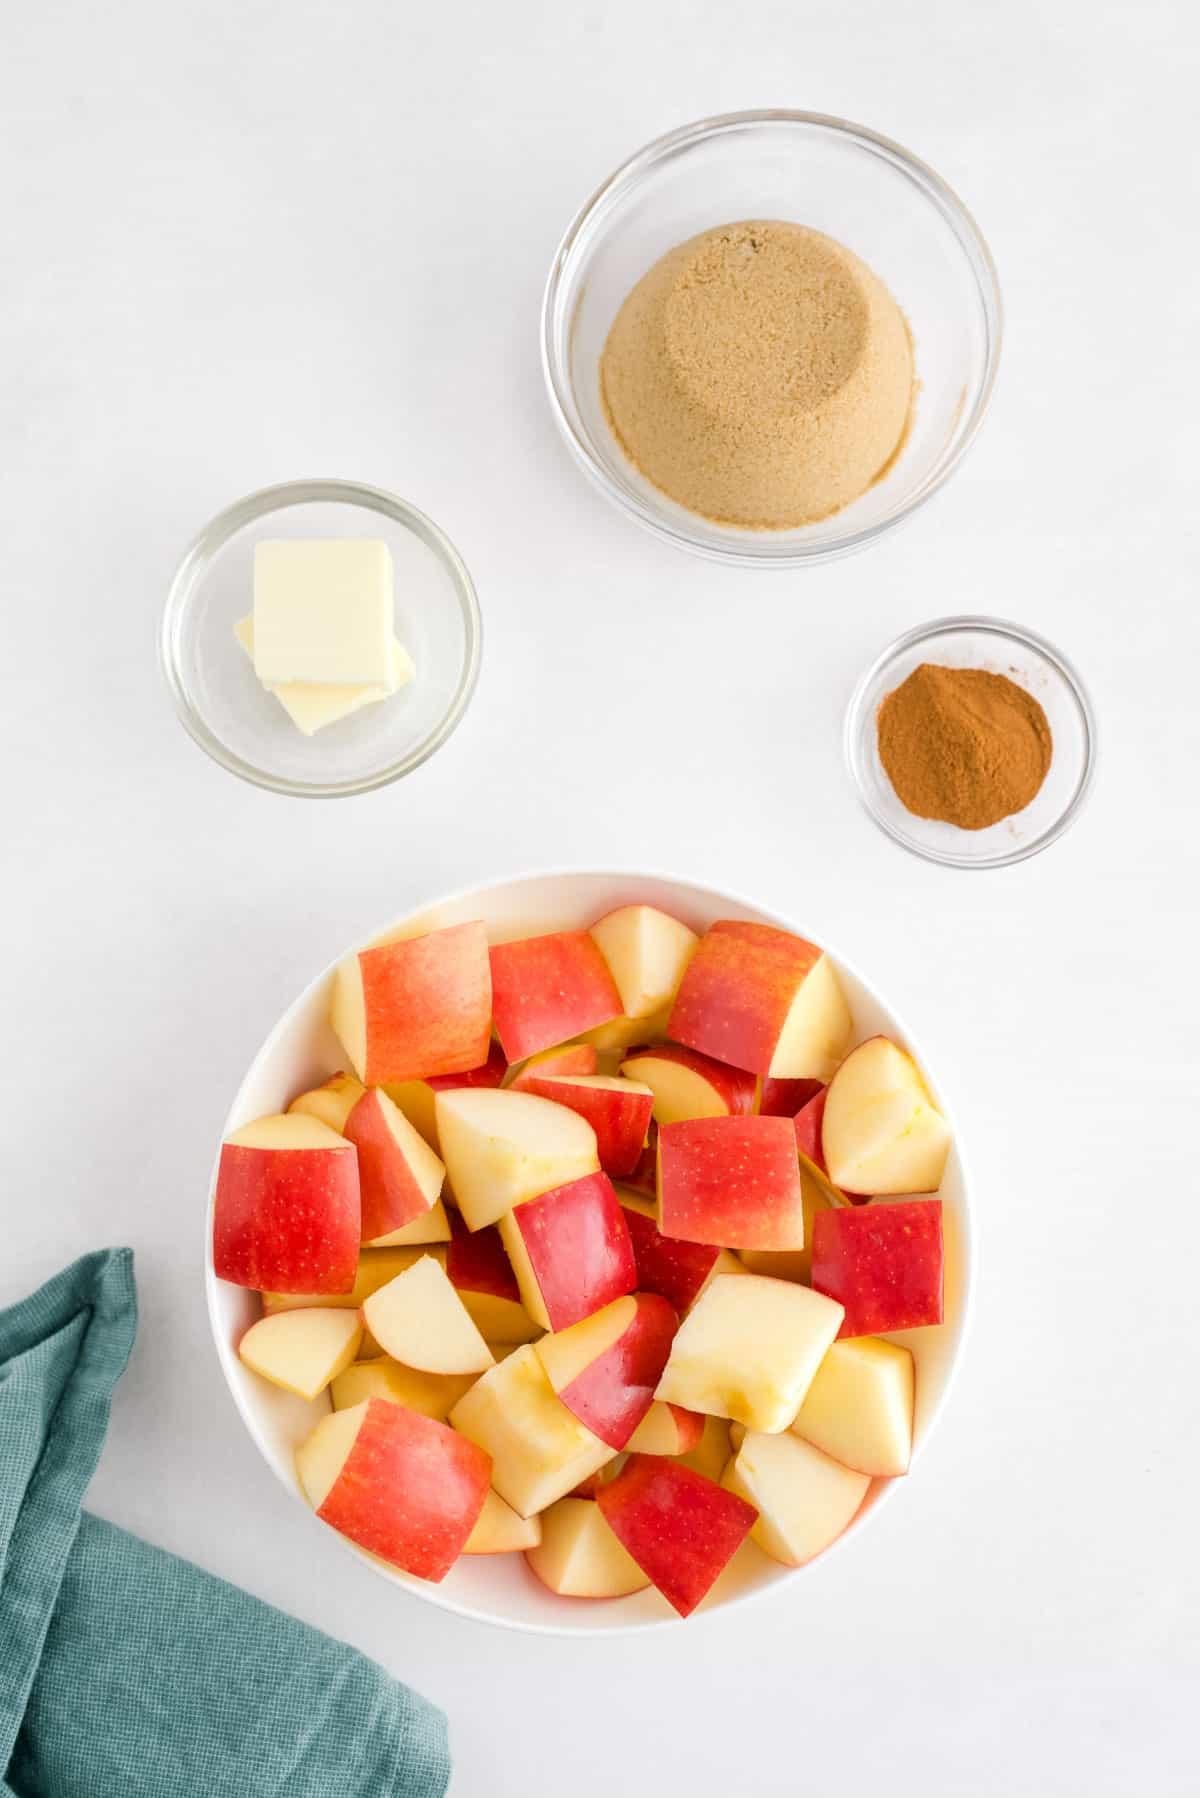 Four bowls filled with ingredients: diced apples, butter, brown sugar, and cinnamon.